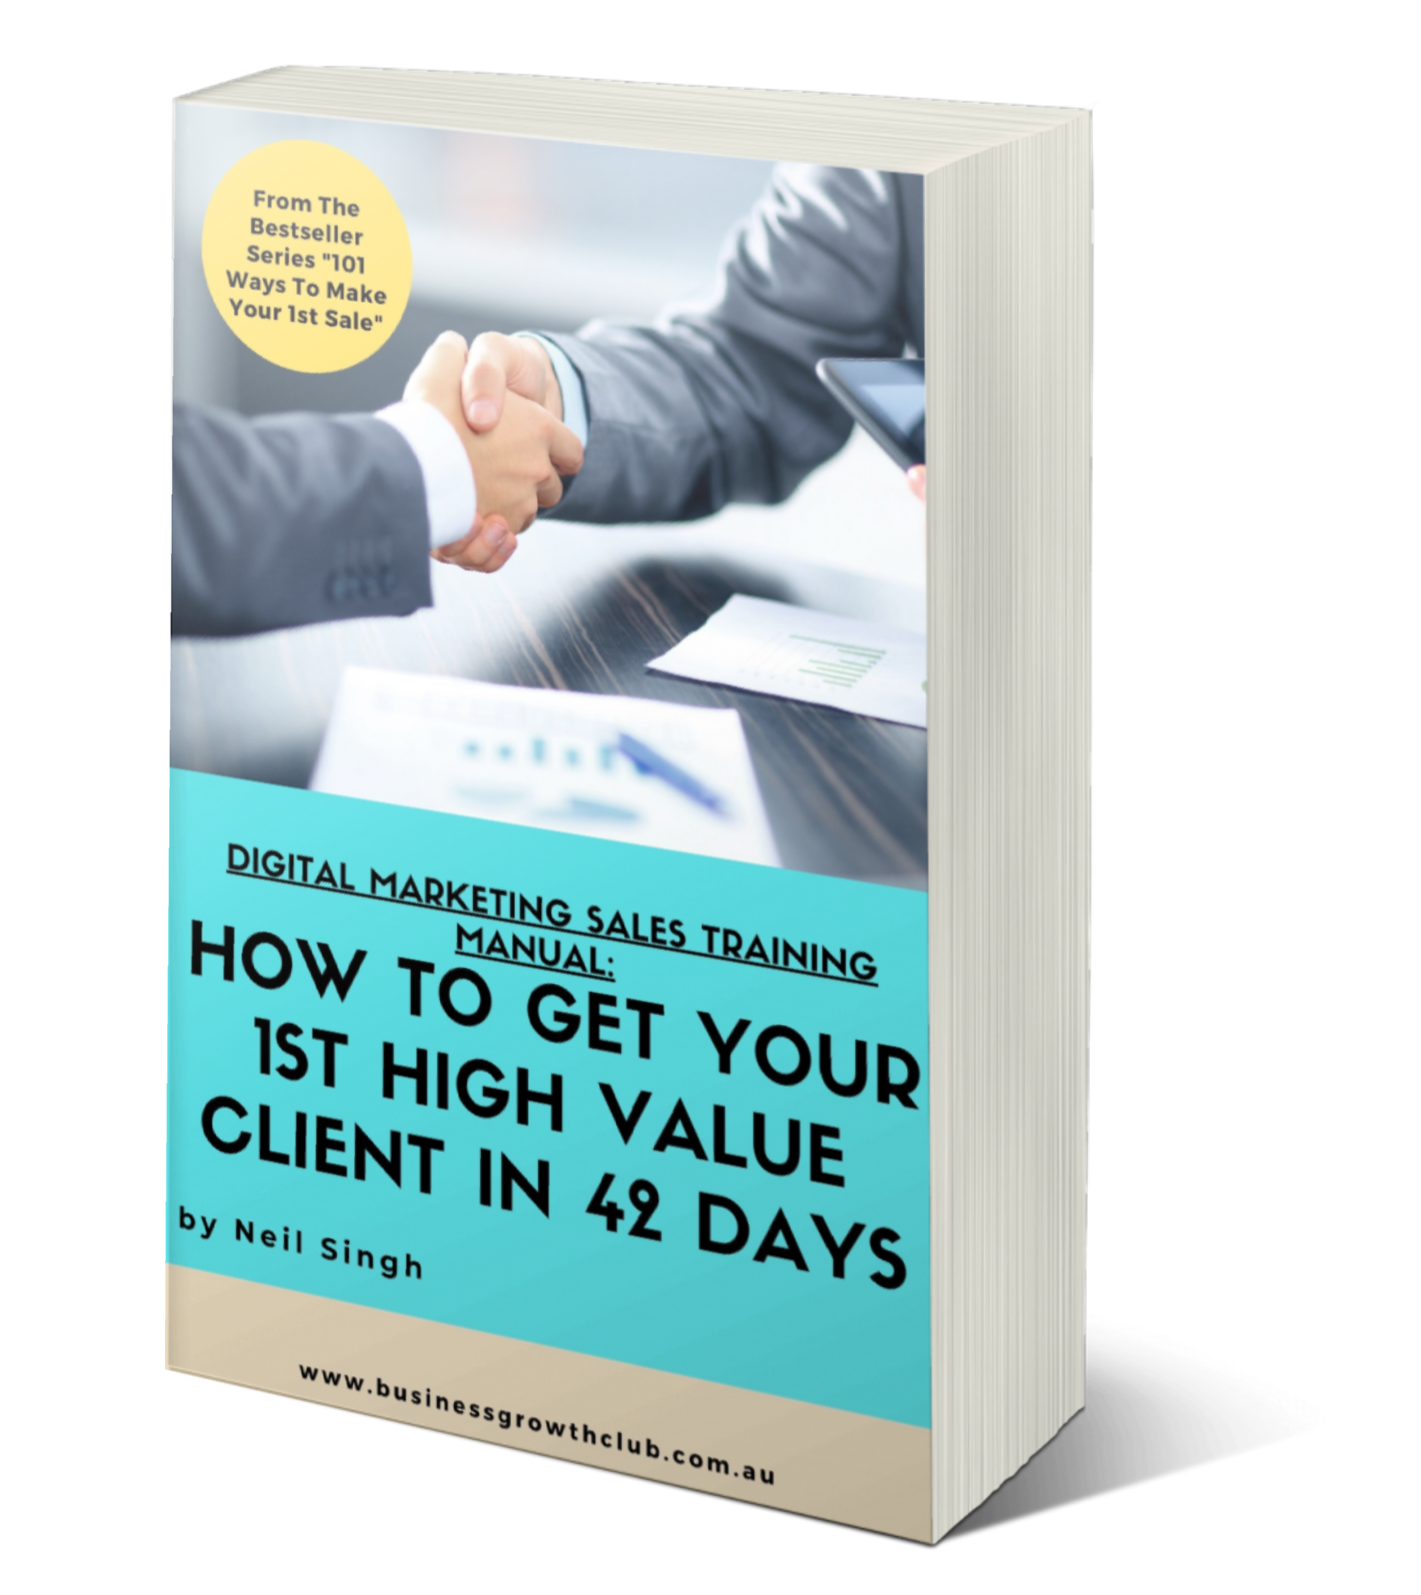 Sales Training Manual How to get your 1st digital marketing client cover (3)